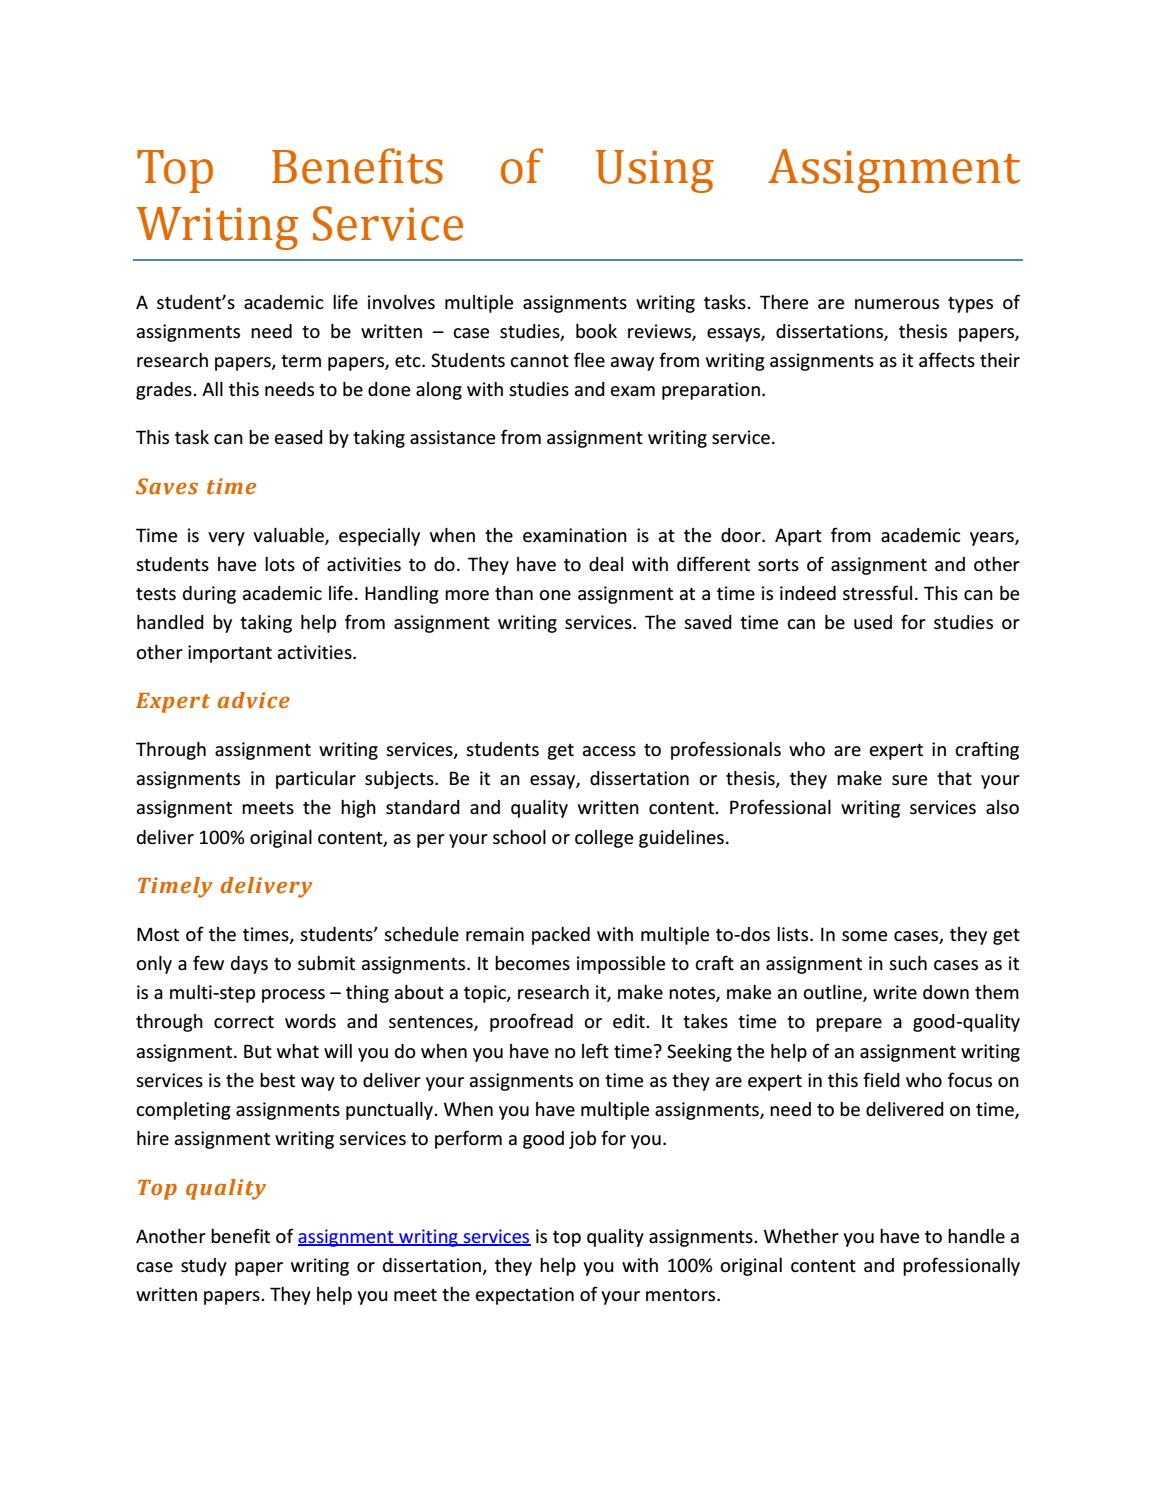 Top thesis writer service for college cover letter electronically submitted